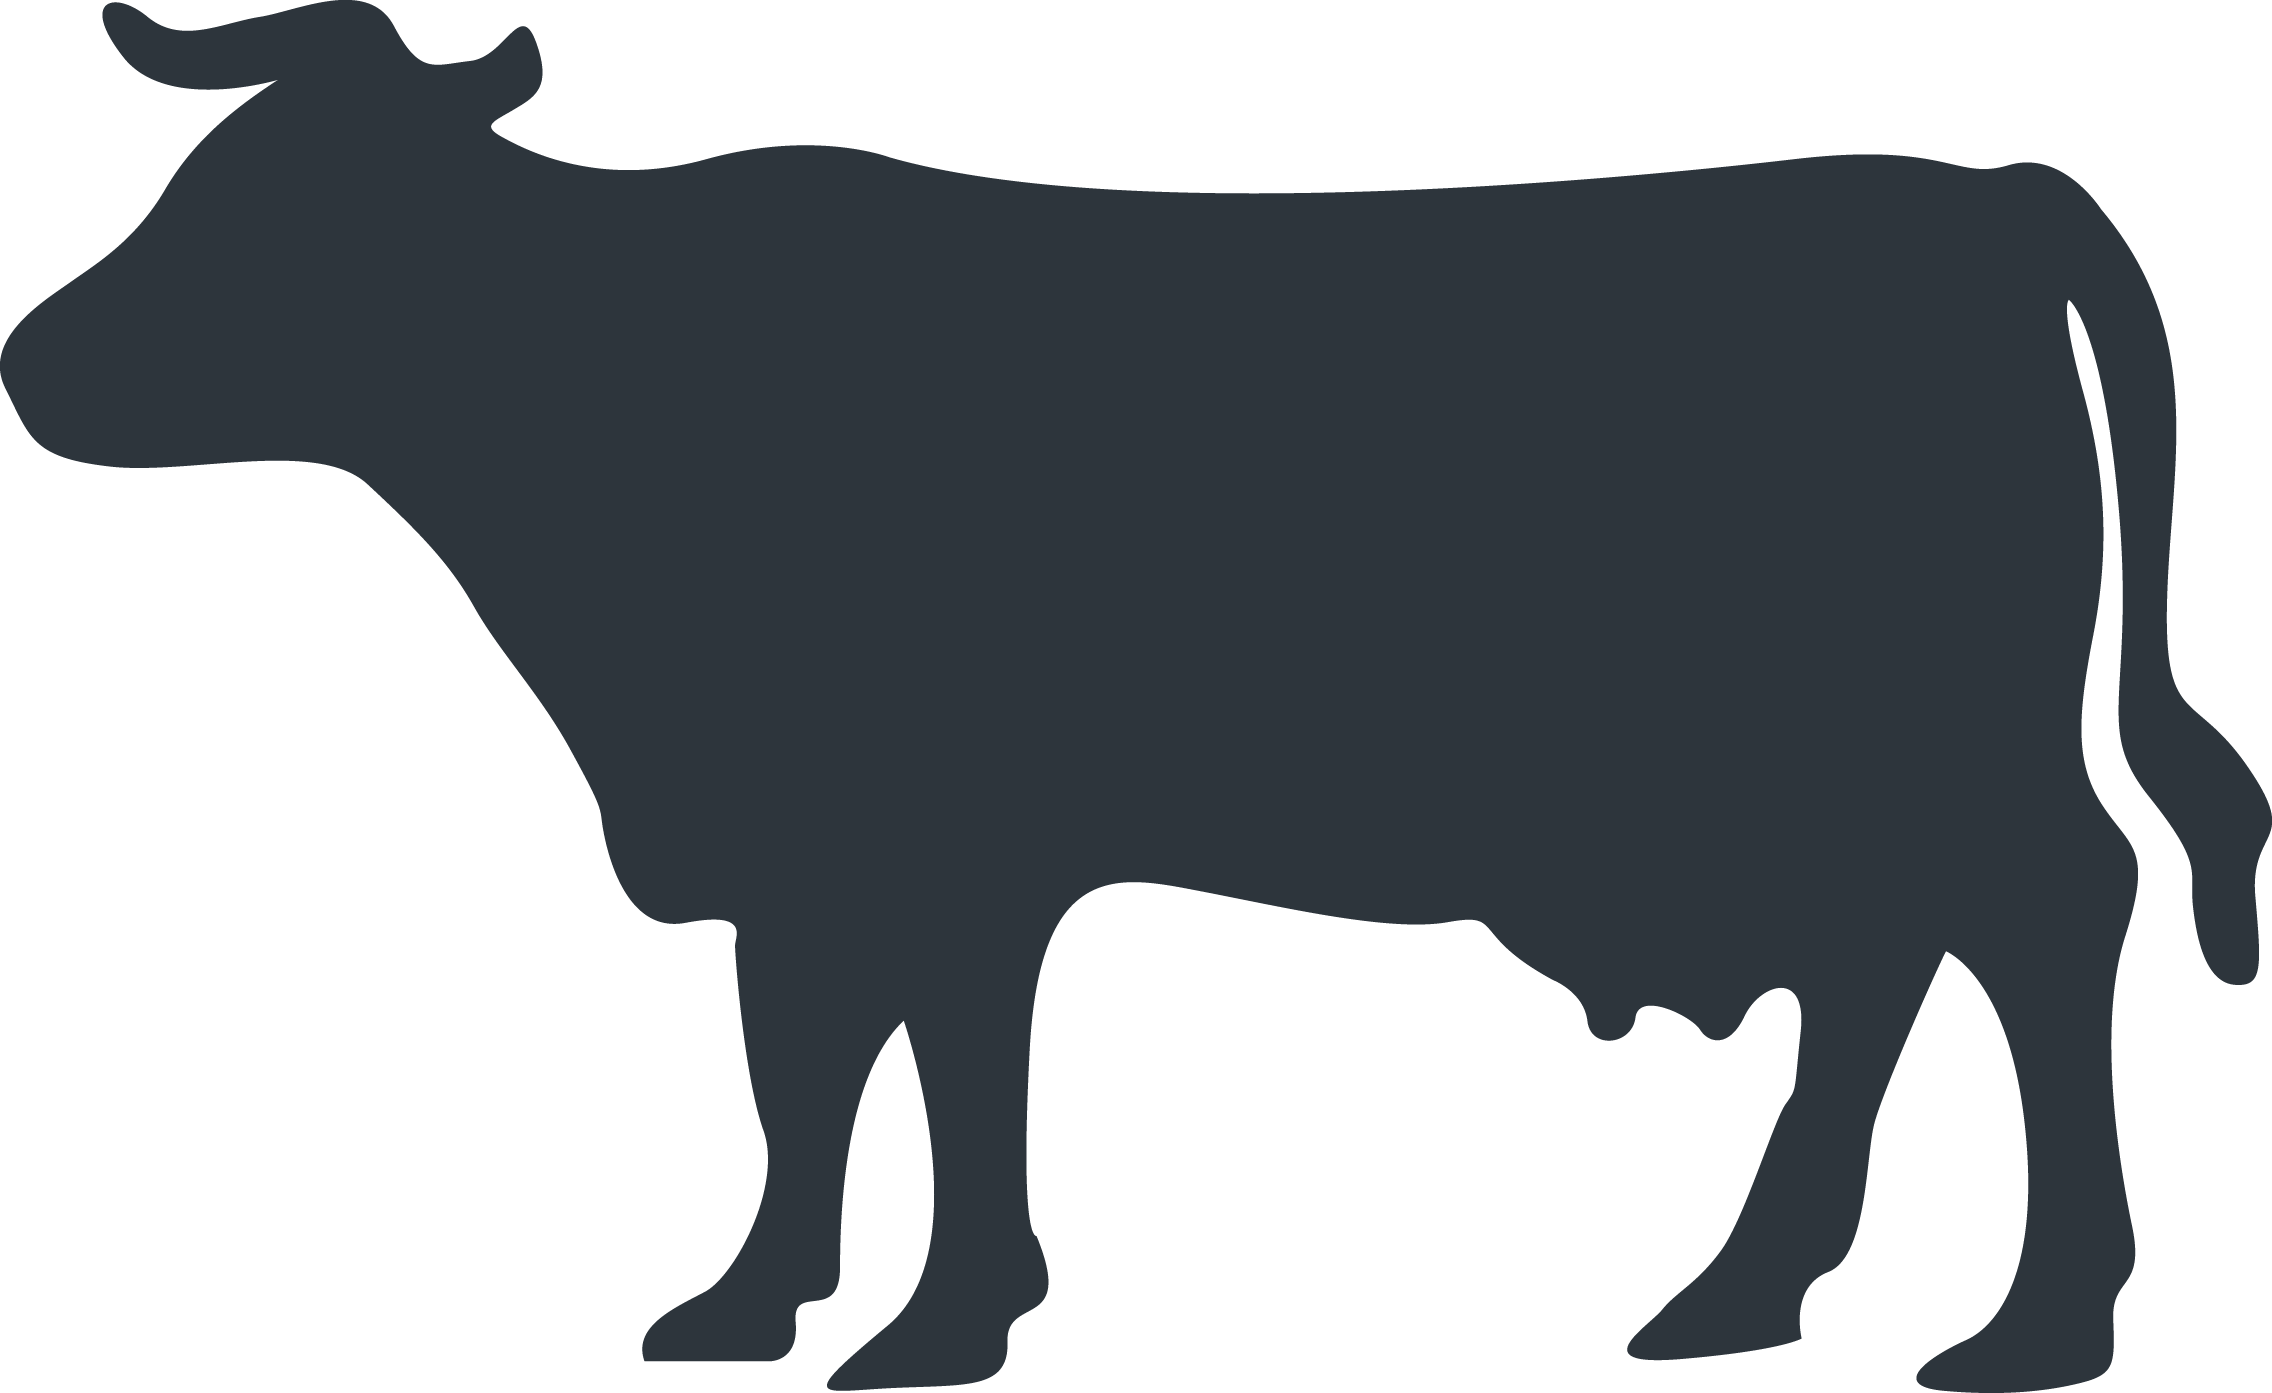 Cows clipart waste. Climate change awareness